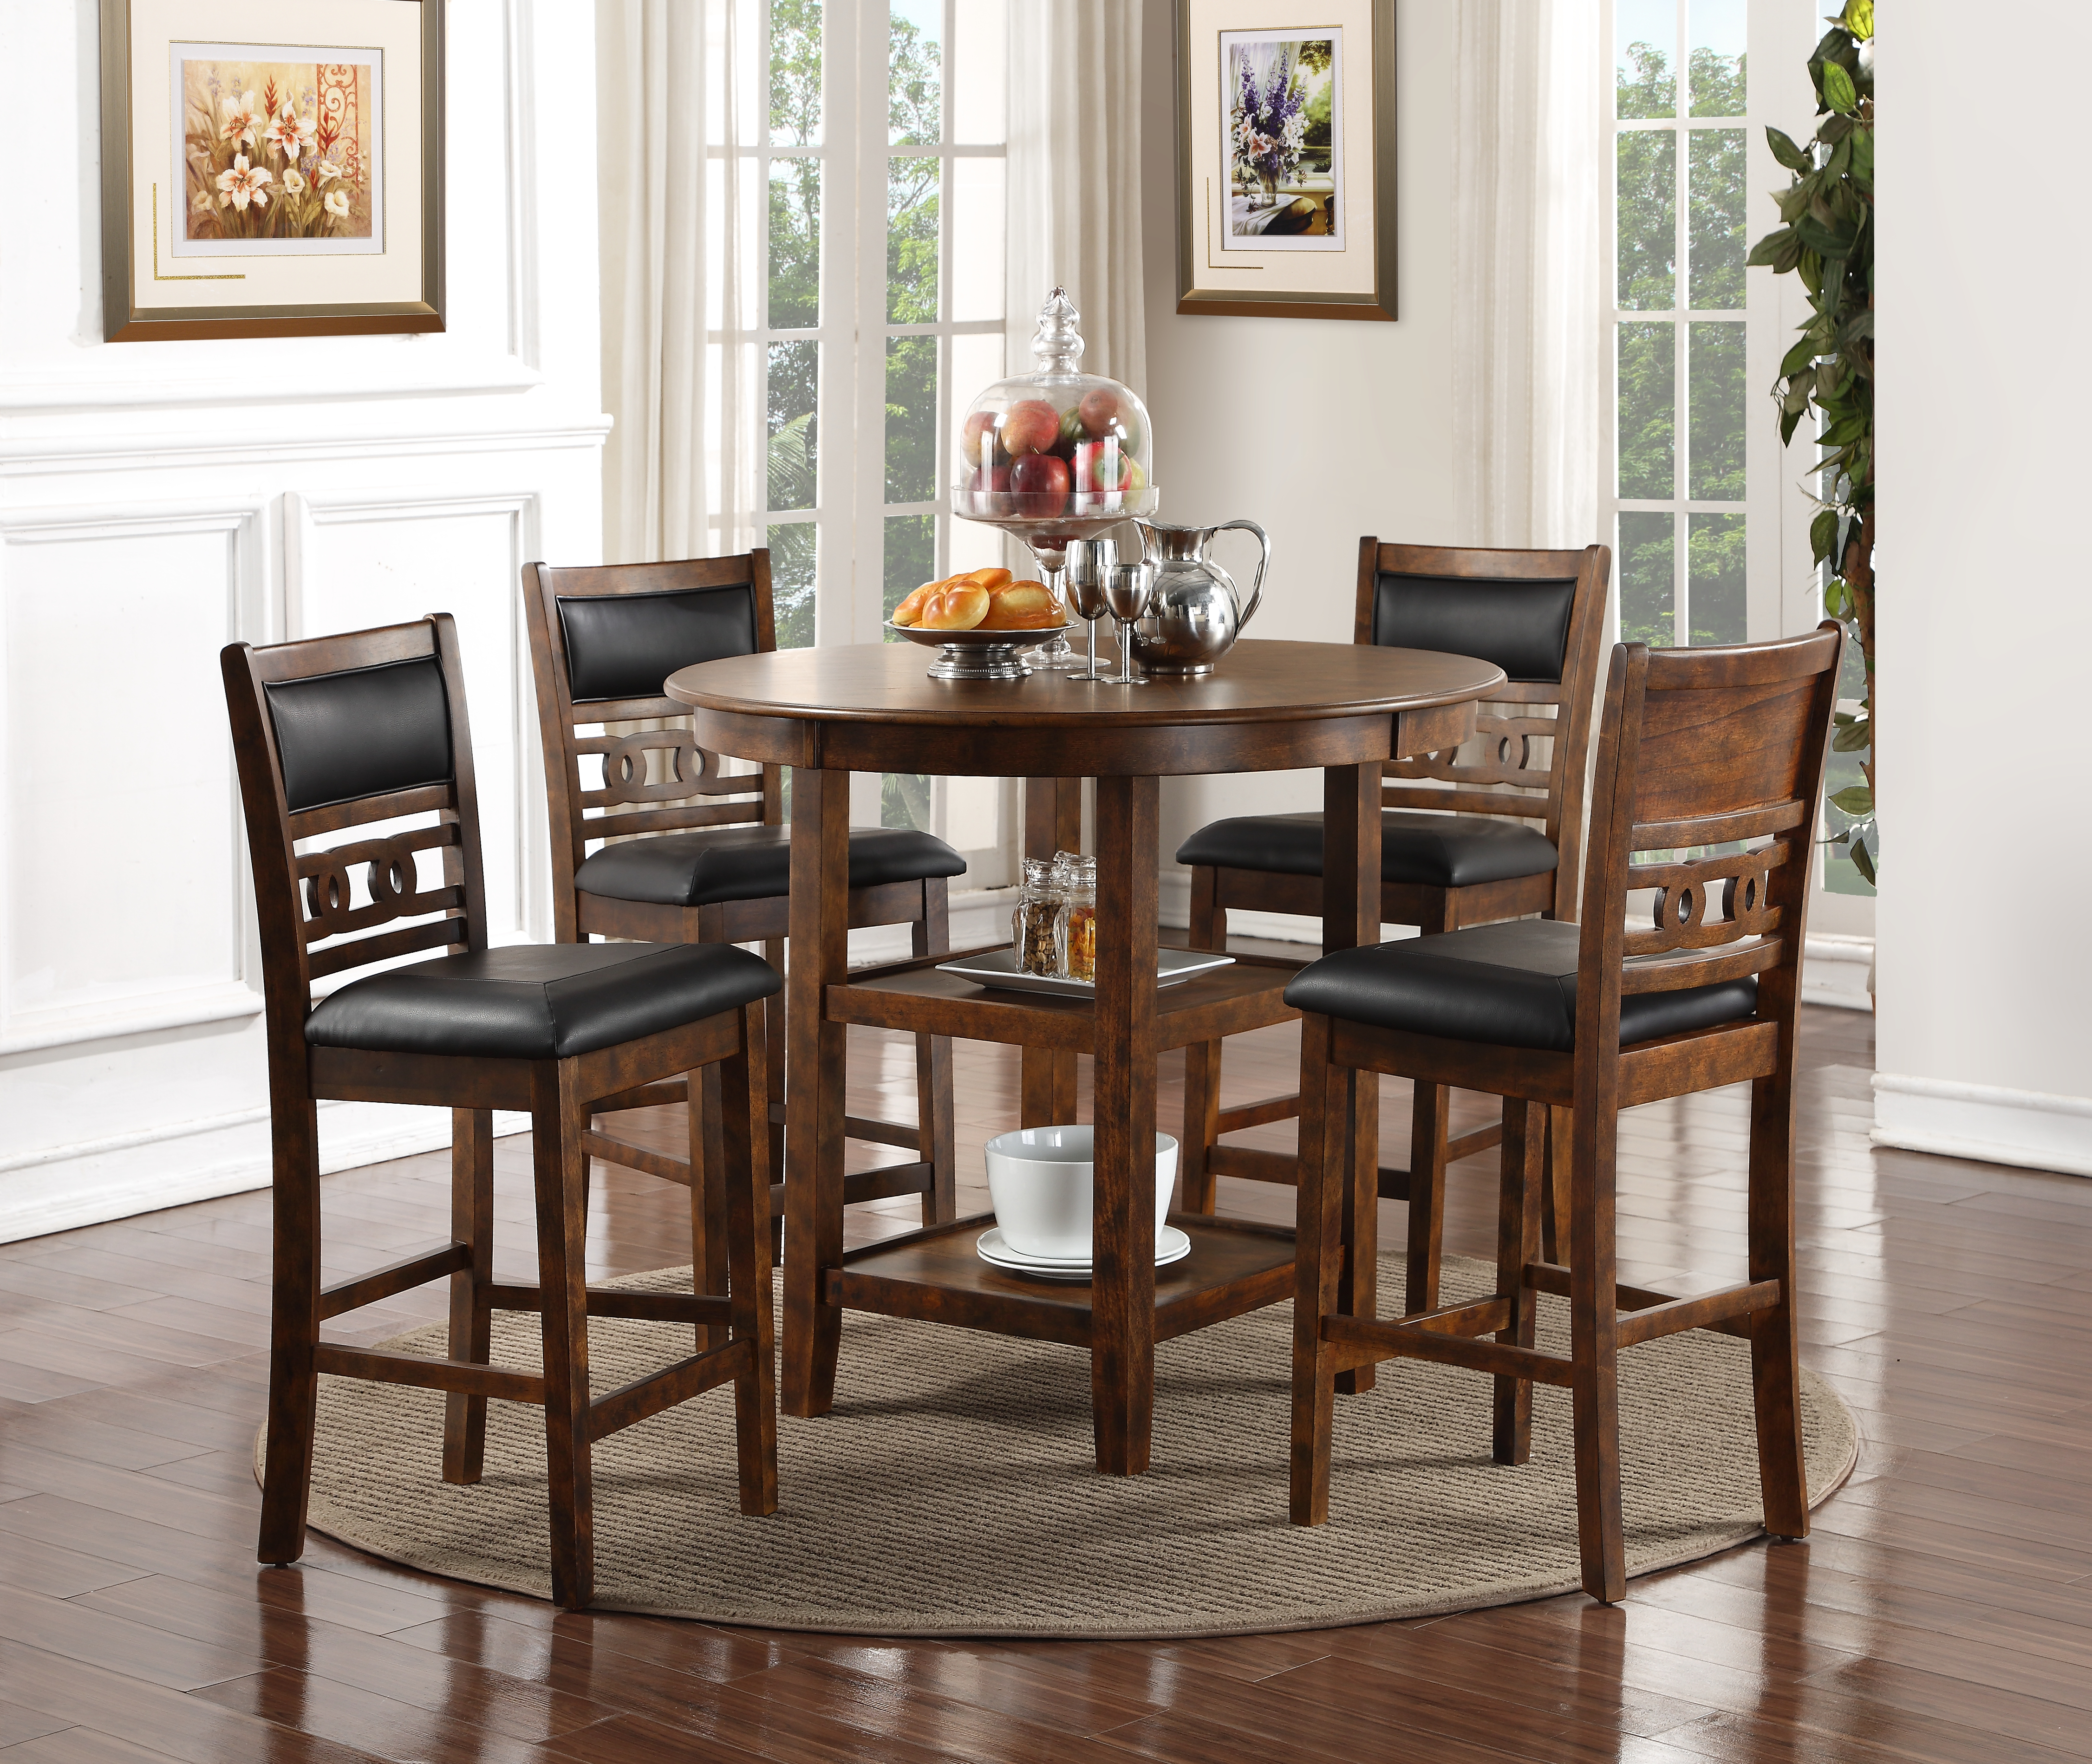 Majik Dining Room Furniture Rental In Pennsylvania RentToOwn - Dining room table for four